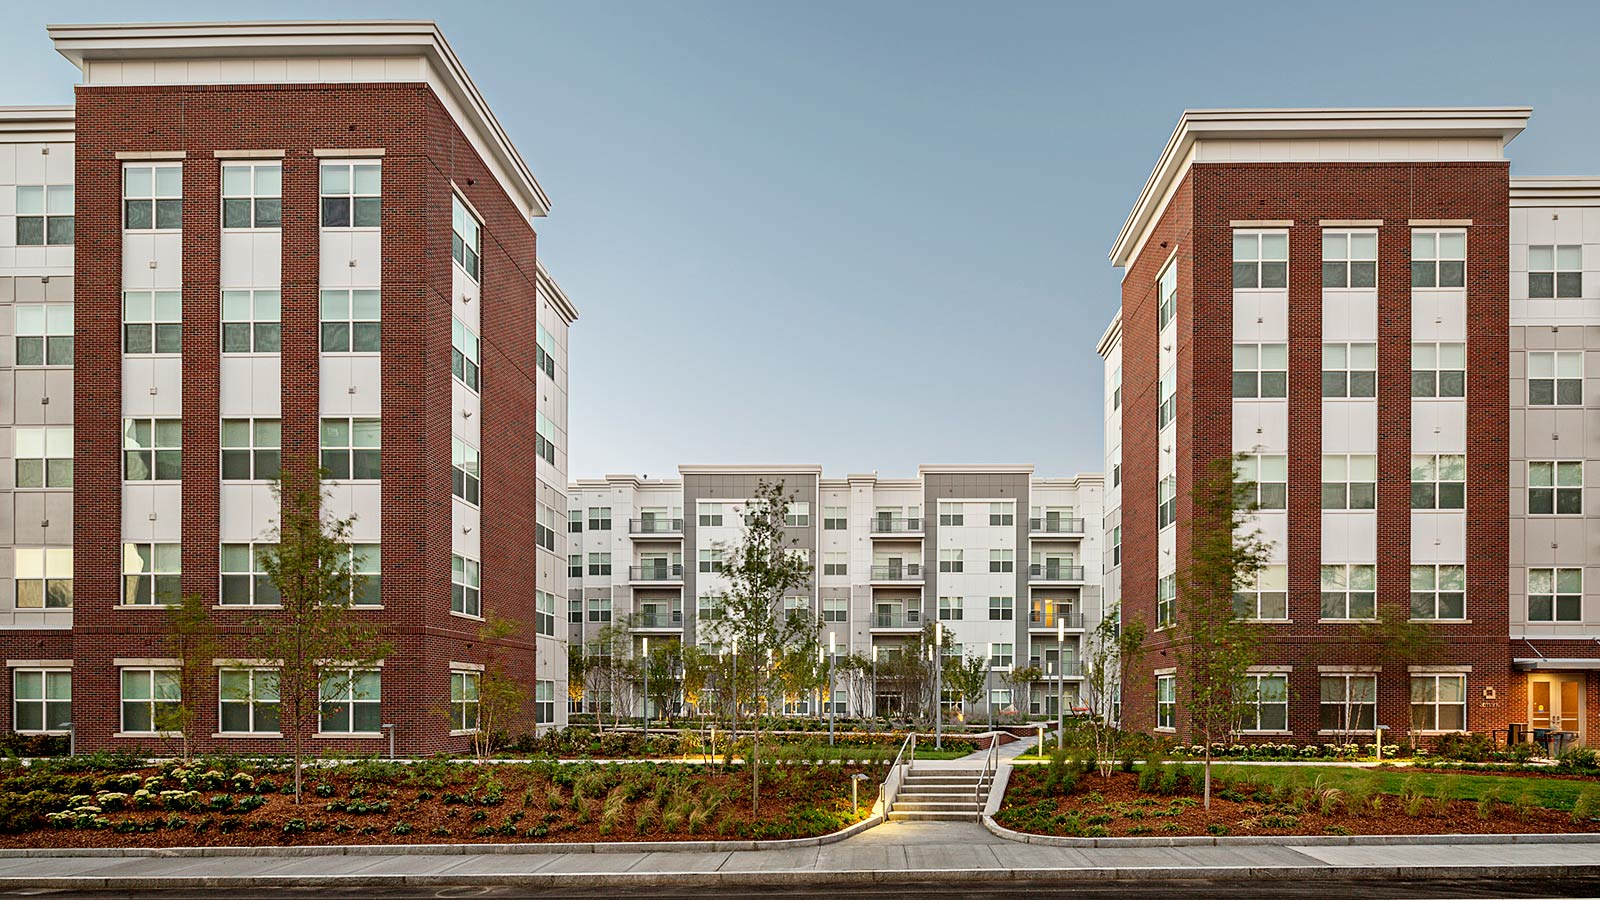 Atmark Apartments